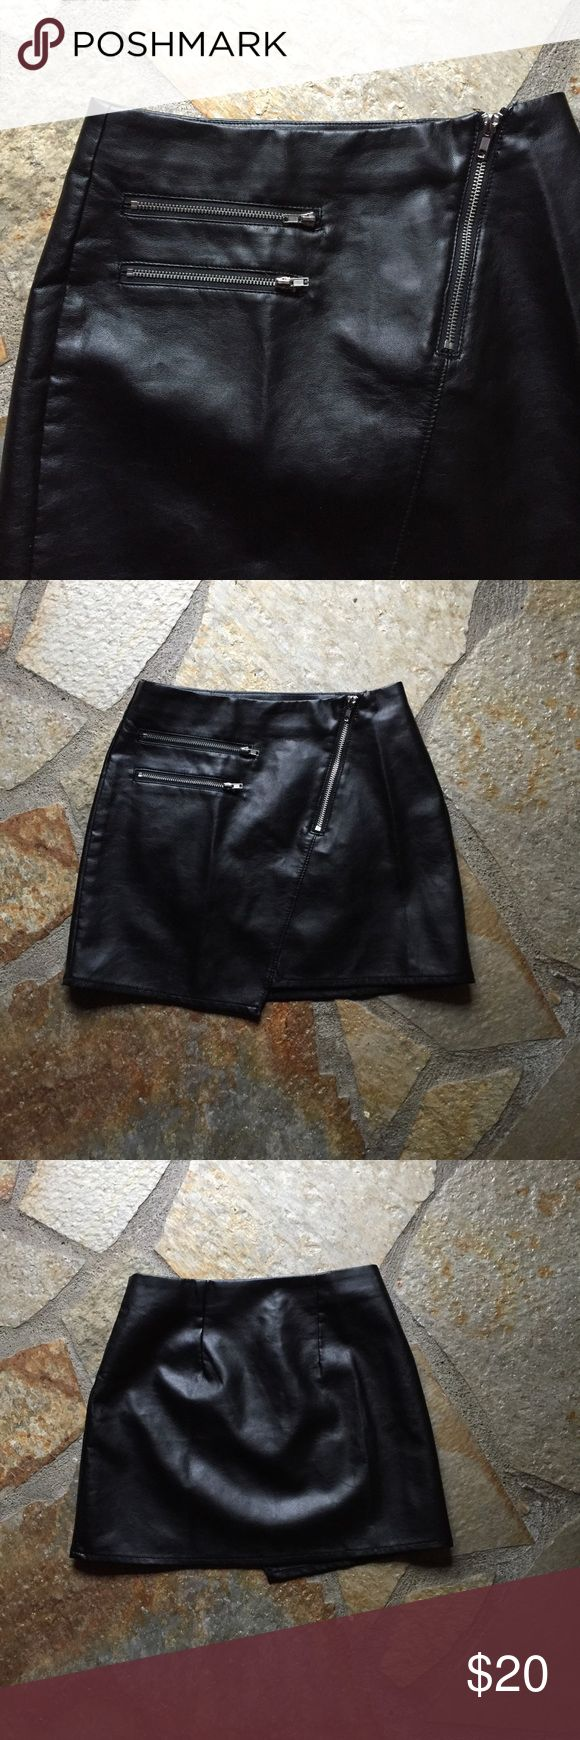 17 migliori idee su Faux Leather Skirt su Pinterest | Gonne in ...